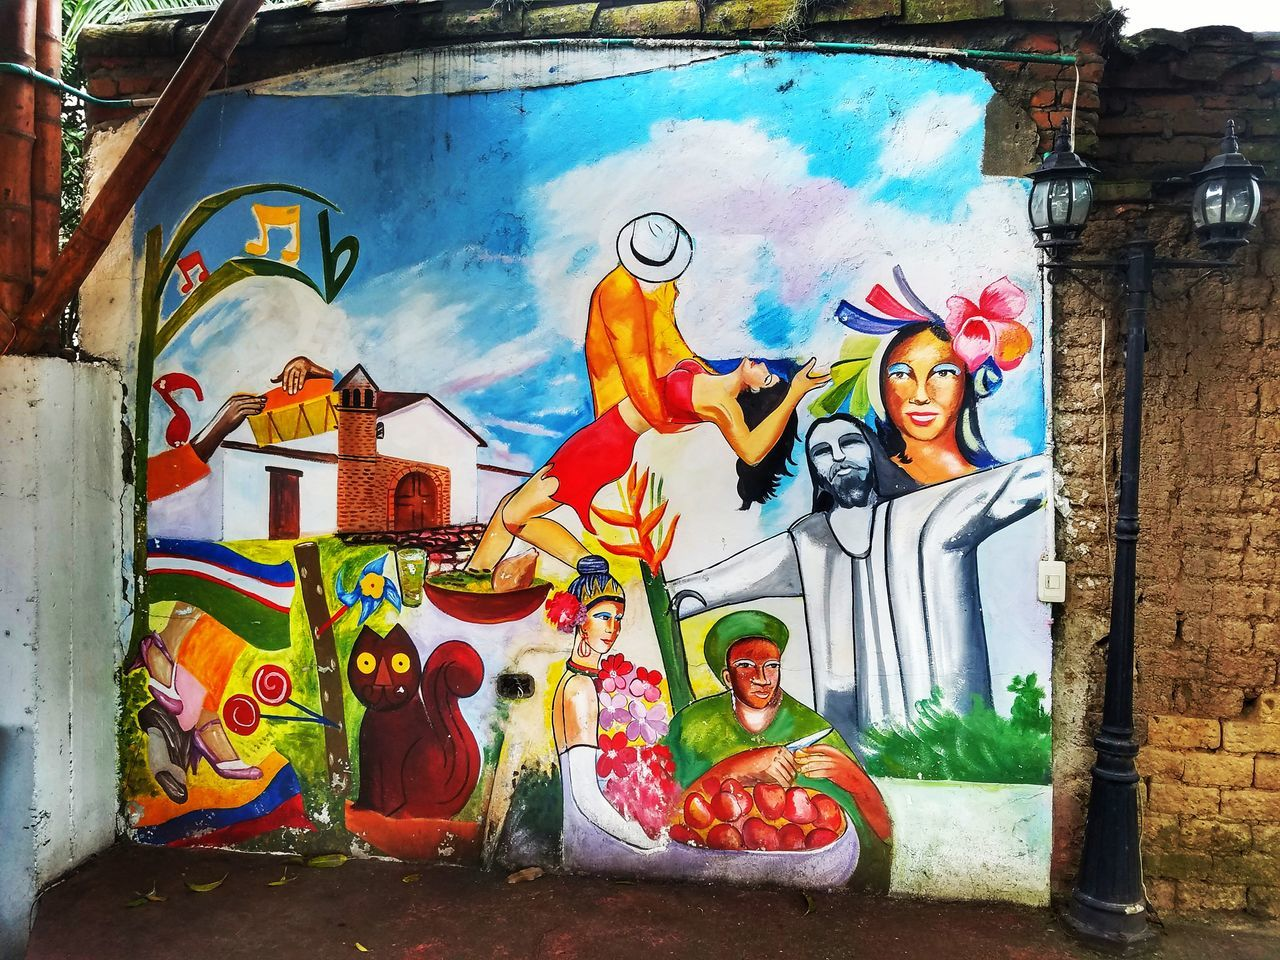 Mural Mural Art CALI COLOMBIA San Antonio Tipical Spanish Travel Destinations Vacations Art No People The City Light